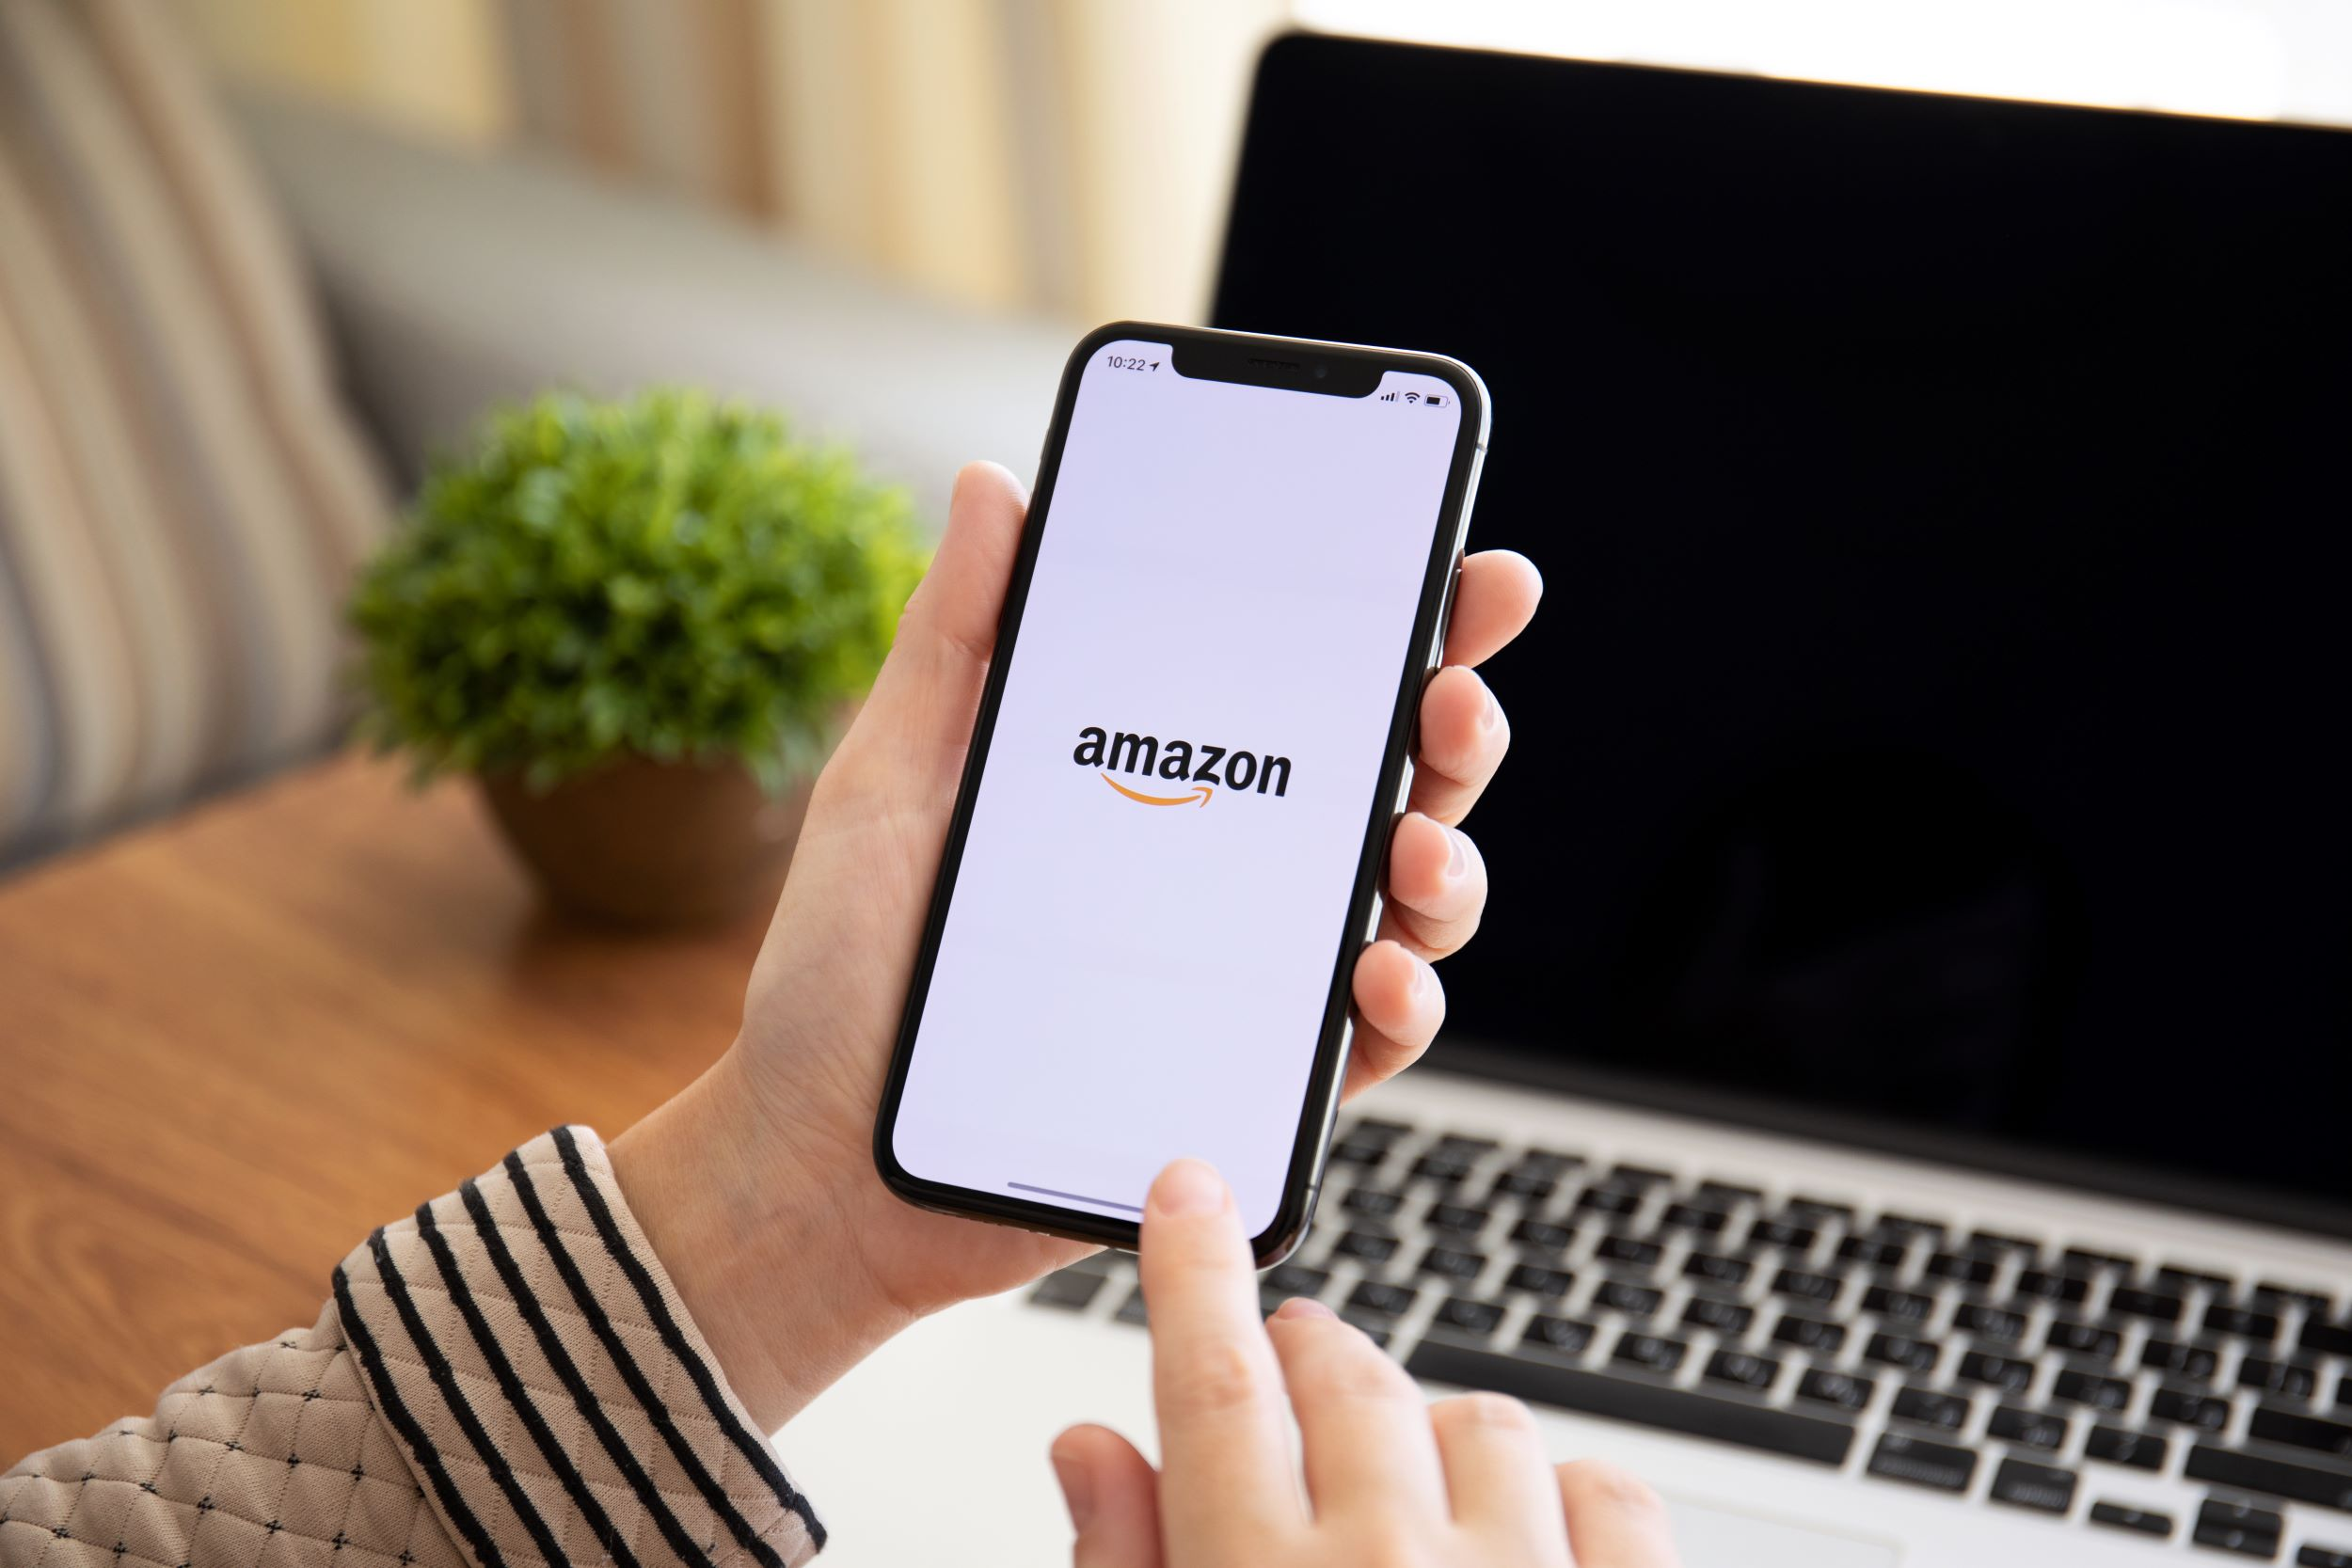 A woman holds up a phone with an Amazon logo